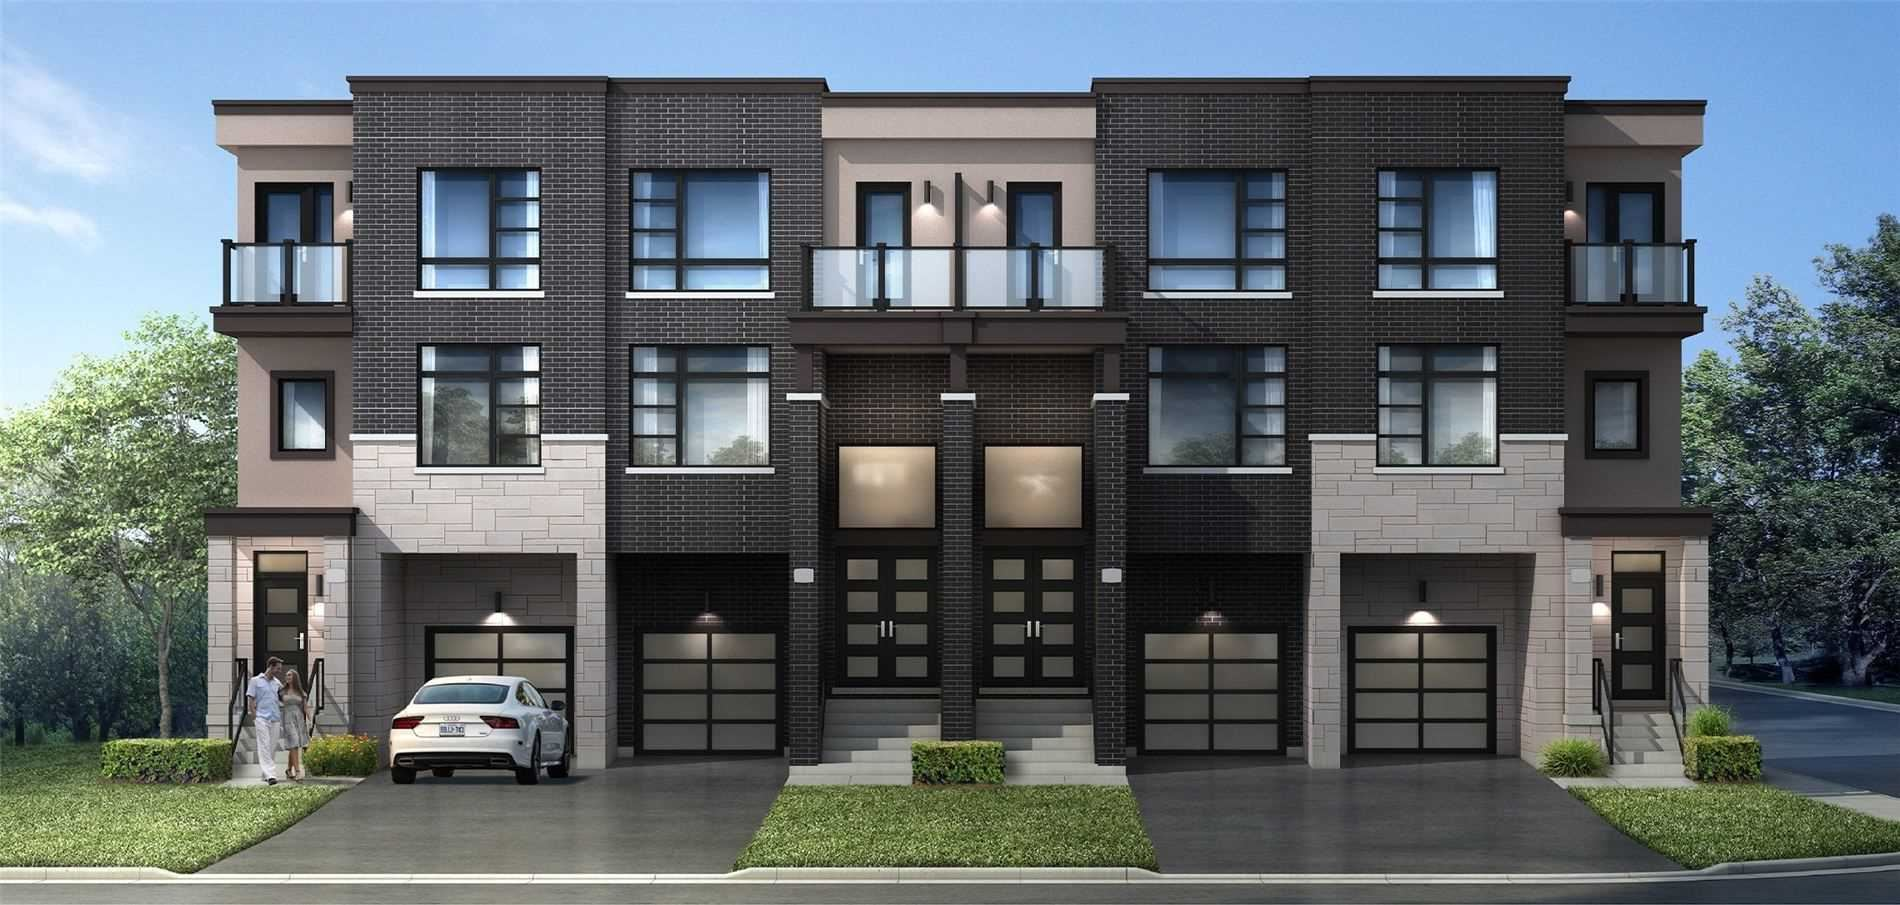 77  Quilco Rd, Vaughan, ON L4L 1A7 - MLS#: N5385652